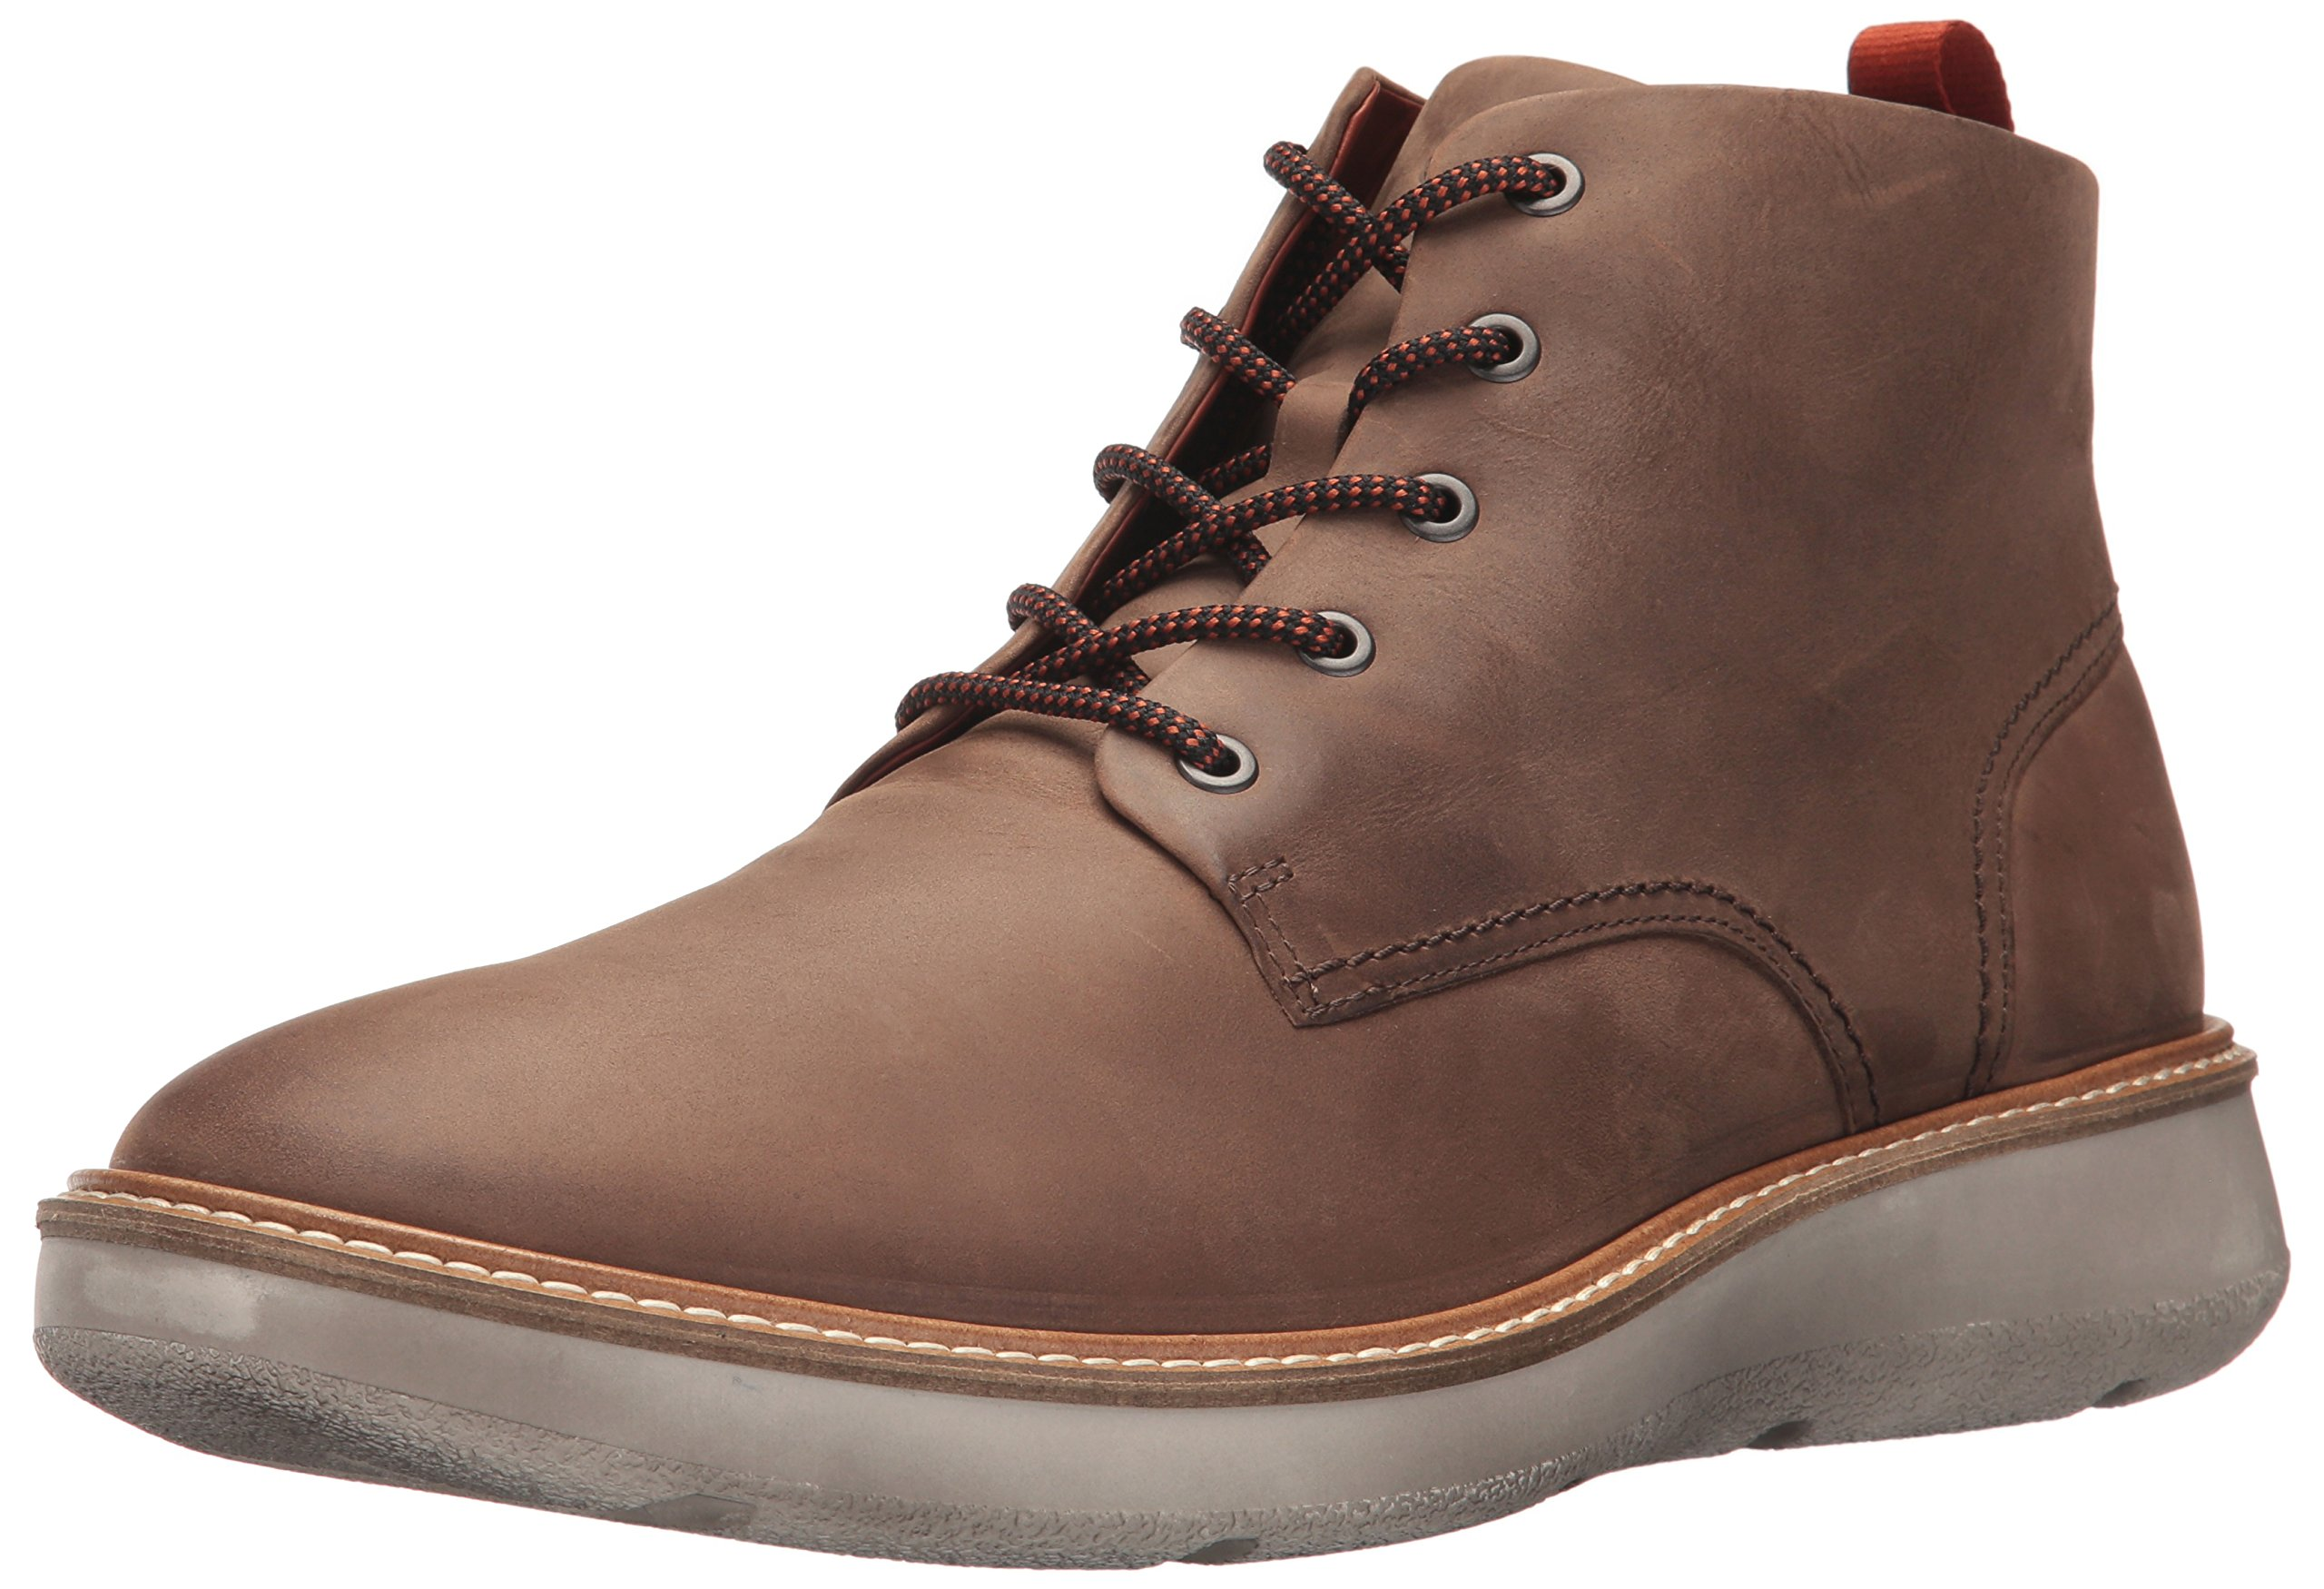 ECCO Men's Aurora Mid Chukka Boot, Cocoa Brown, 43 M EU/9-9.5 D(M) US